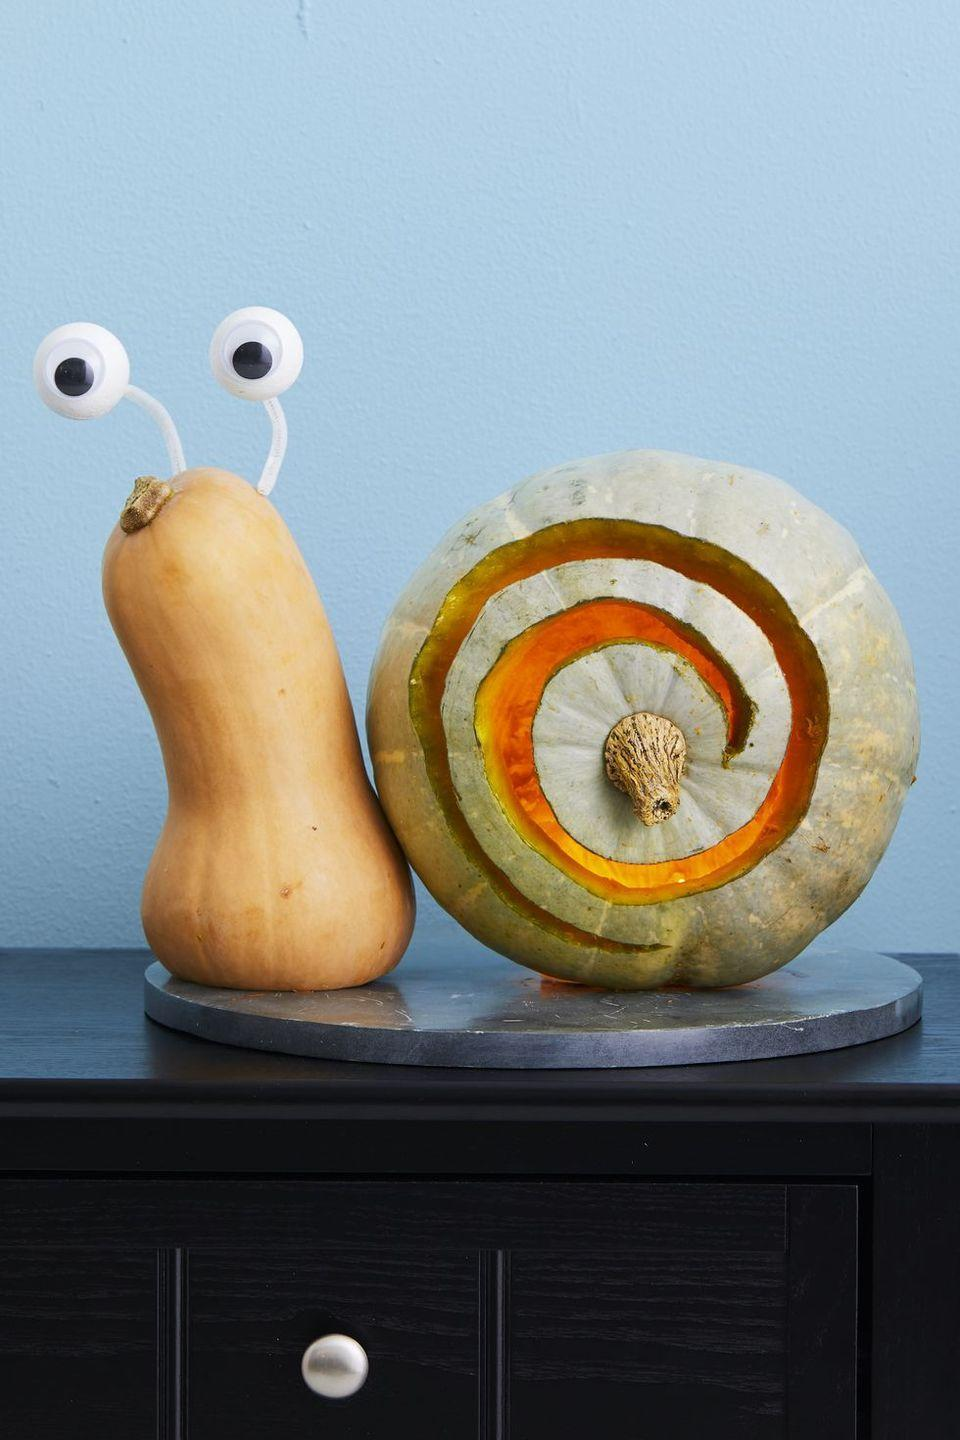 """<p>A hollowed-out pumpkin with a swirly design becomes the """"shell"""" for this sweet snail, while pipe cleaners and ping-pong ball """"eyes"""" help him see clearly.</p><p><strong>Get the tutorial at <a href=""""https://www.womansday.com/home/crafts-projects/g950/funny-pumpkin-carving-ideas/"""" rel=""""nofollow noopener"""" target=""""_blank"""" data-ylk=""""slk:Woman's Day"""" class=""""link rapid-noclick-resp"""">Woman's Day</a>.</strong></p><p><a class=""""link rapid-noclick-resp"""" href=""""https://go.redirectingat.com?id=74968X1596630&url=https%3A%2F%2Fwww.walmart.com%2Fsearch%2F%3Fquery%3Dpipe%2Bcleaners&sref=https%3A%2F%2Fwww.thepioneerwoman.com%2Fhome-lifestyle%2Fcrafts-diy%2Fg36982763%2Fpumpkin-carving-ideas%2F"""" rel=""""nofollow noopener"""" target=""""_blank"""" data-ylk=""""slk:SHOP PIPE CLEANERS"""">SHOP PIPE CLEANERS</a></p>"""